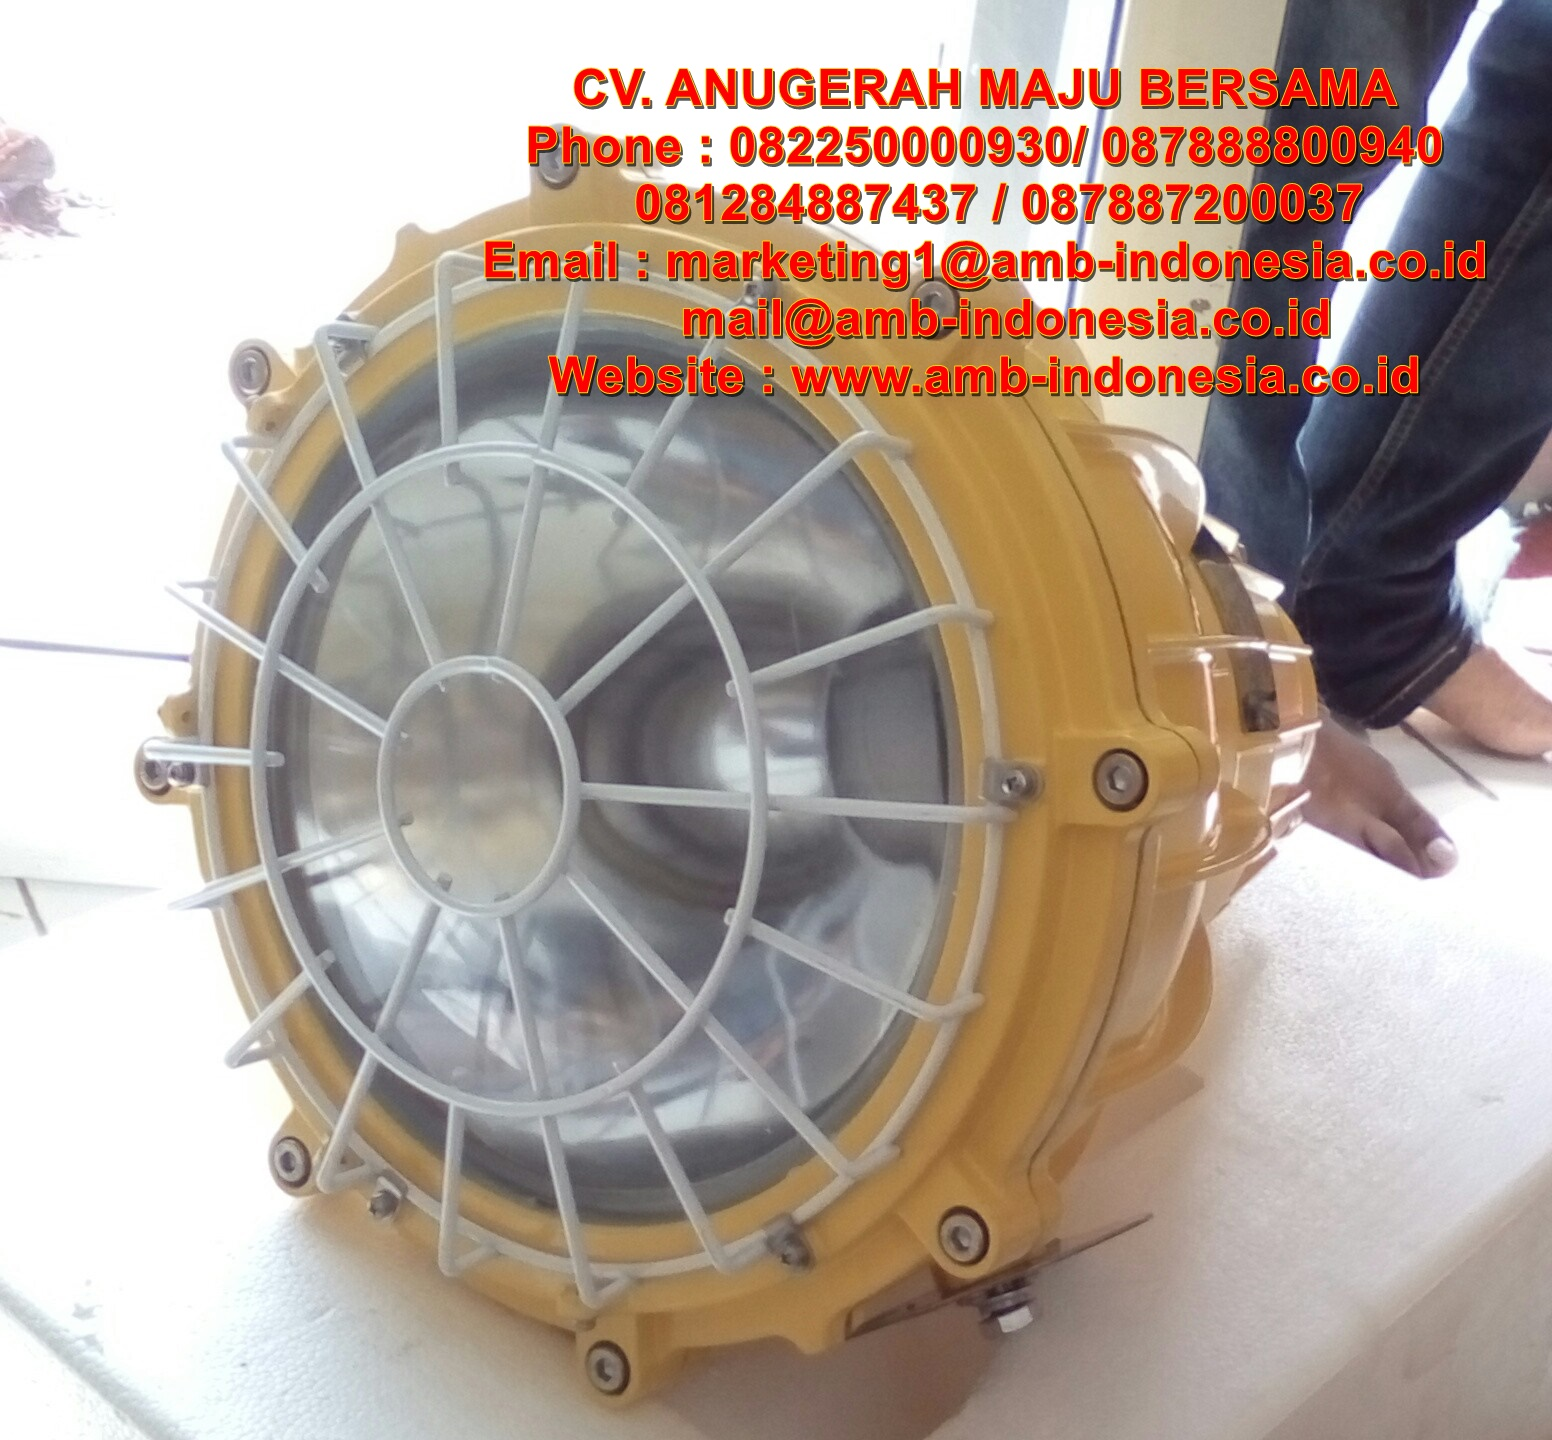 Warom Explosion Proof Electrical: Lampu Sorot Explosion